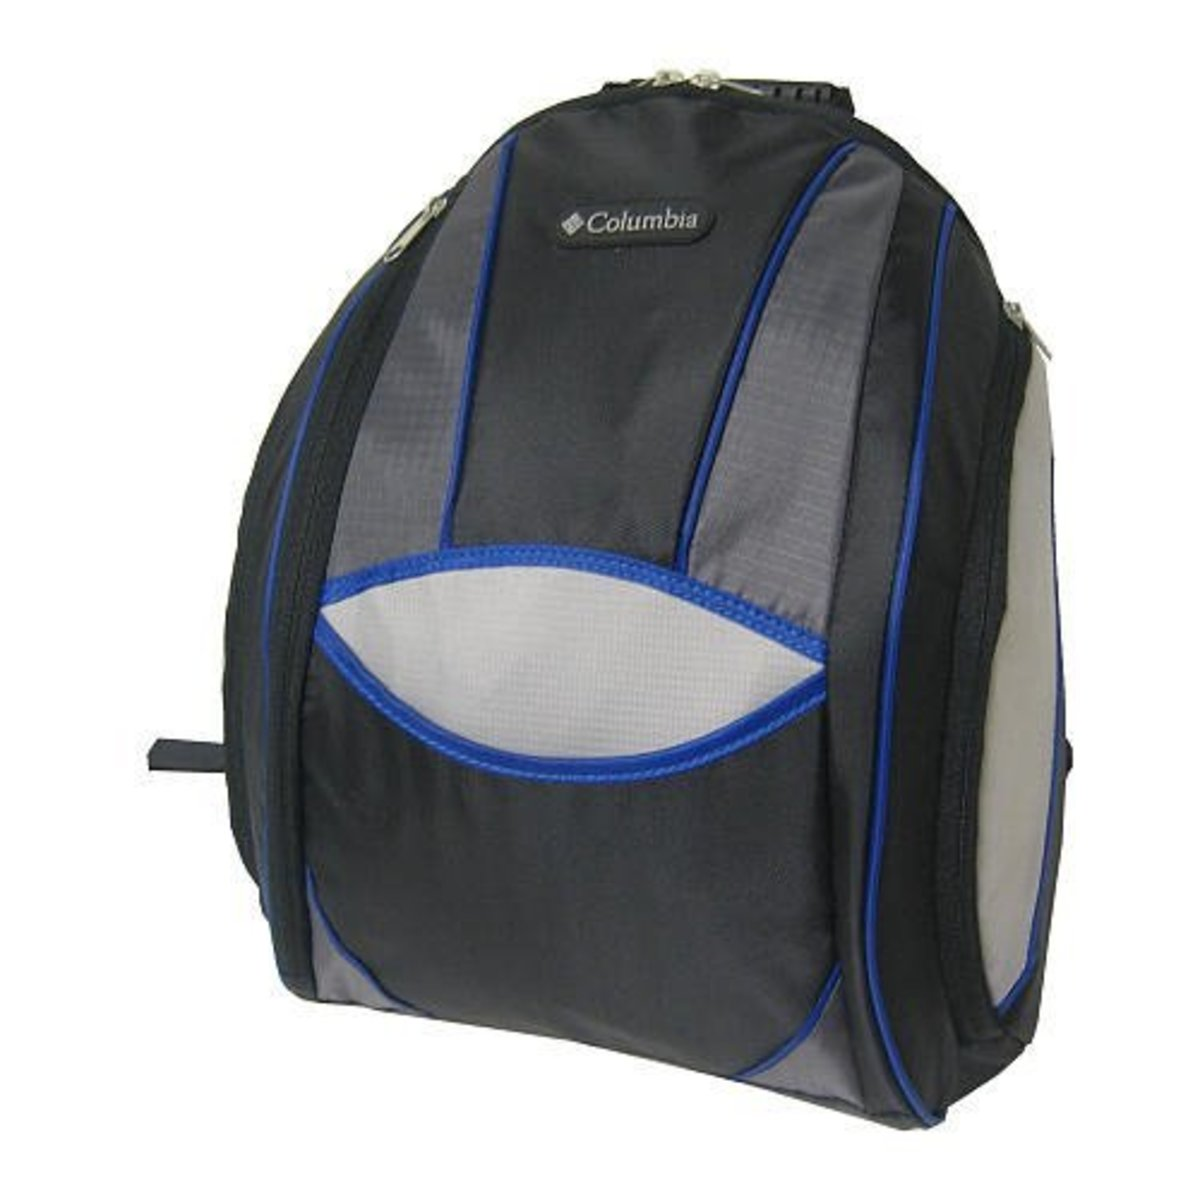 Columbia Trekster Diaper backpack.